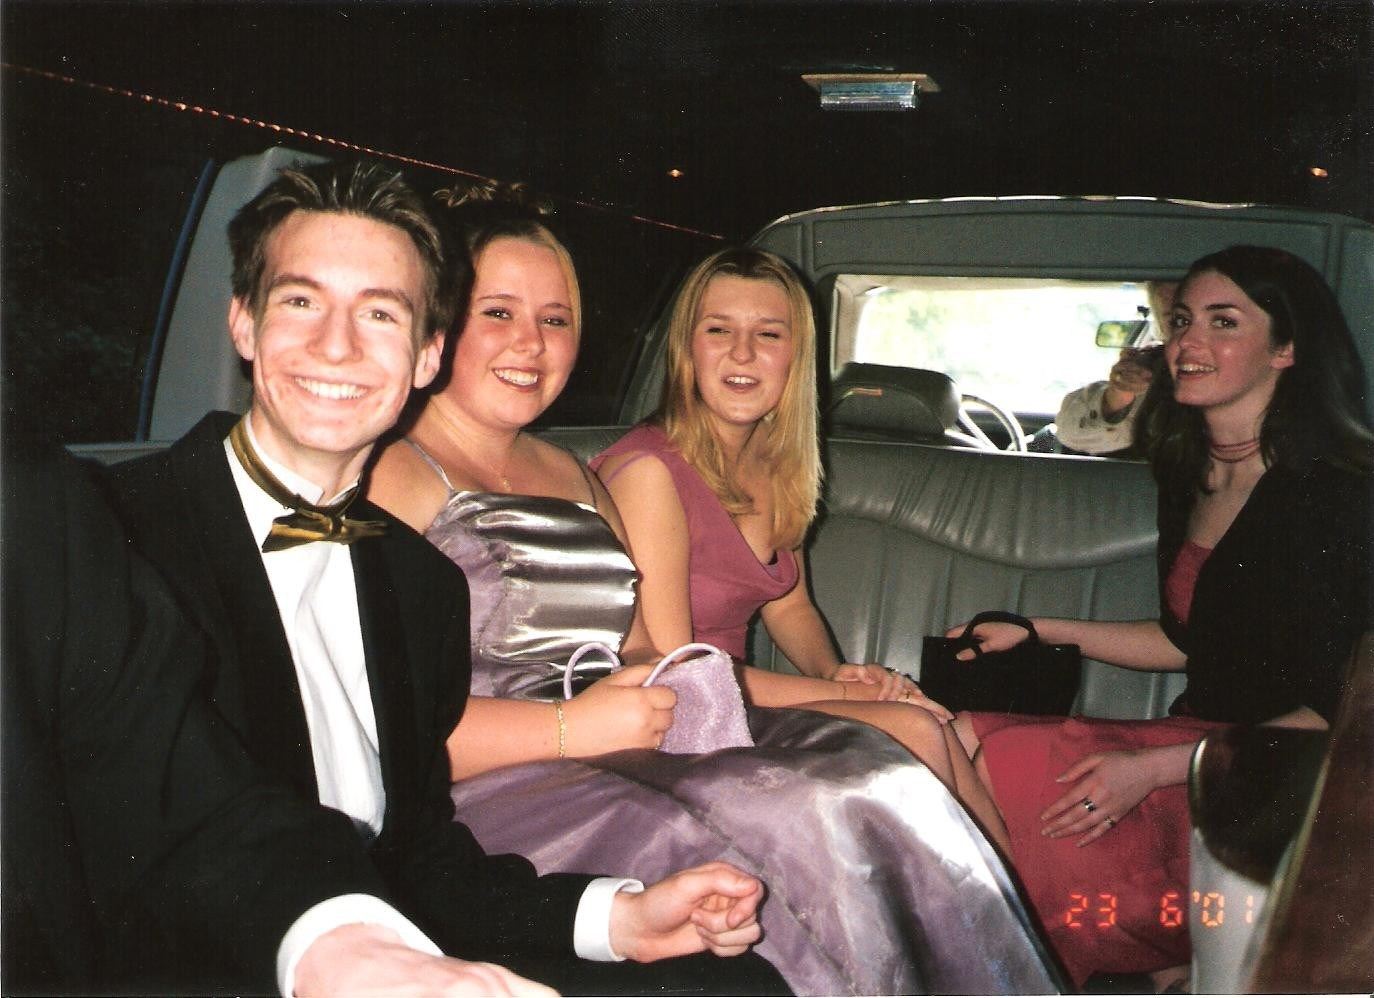 Leafy, Katie, Katrina and Heather in the limo for the 6th Form Leaver's party